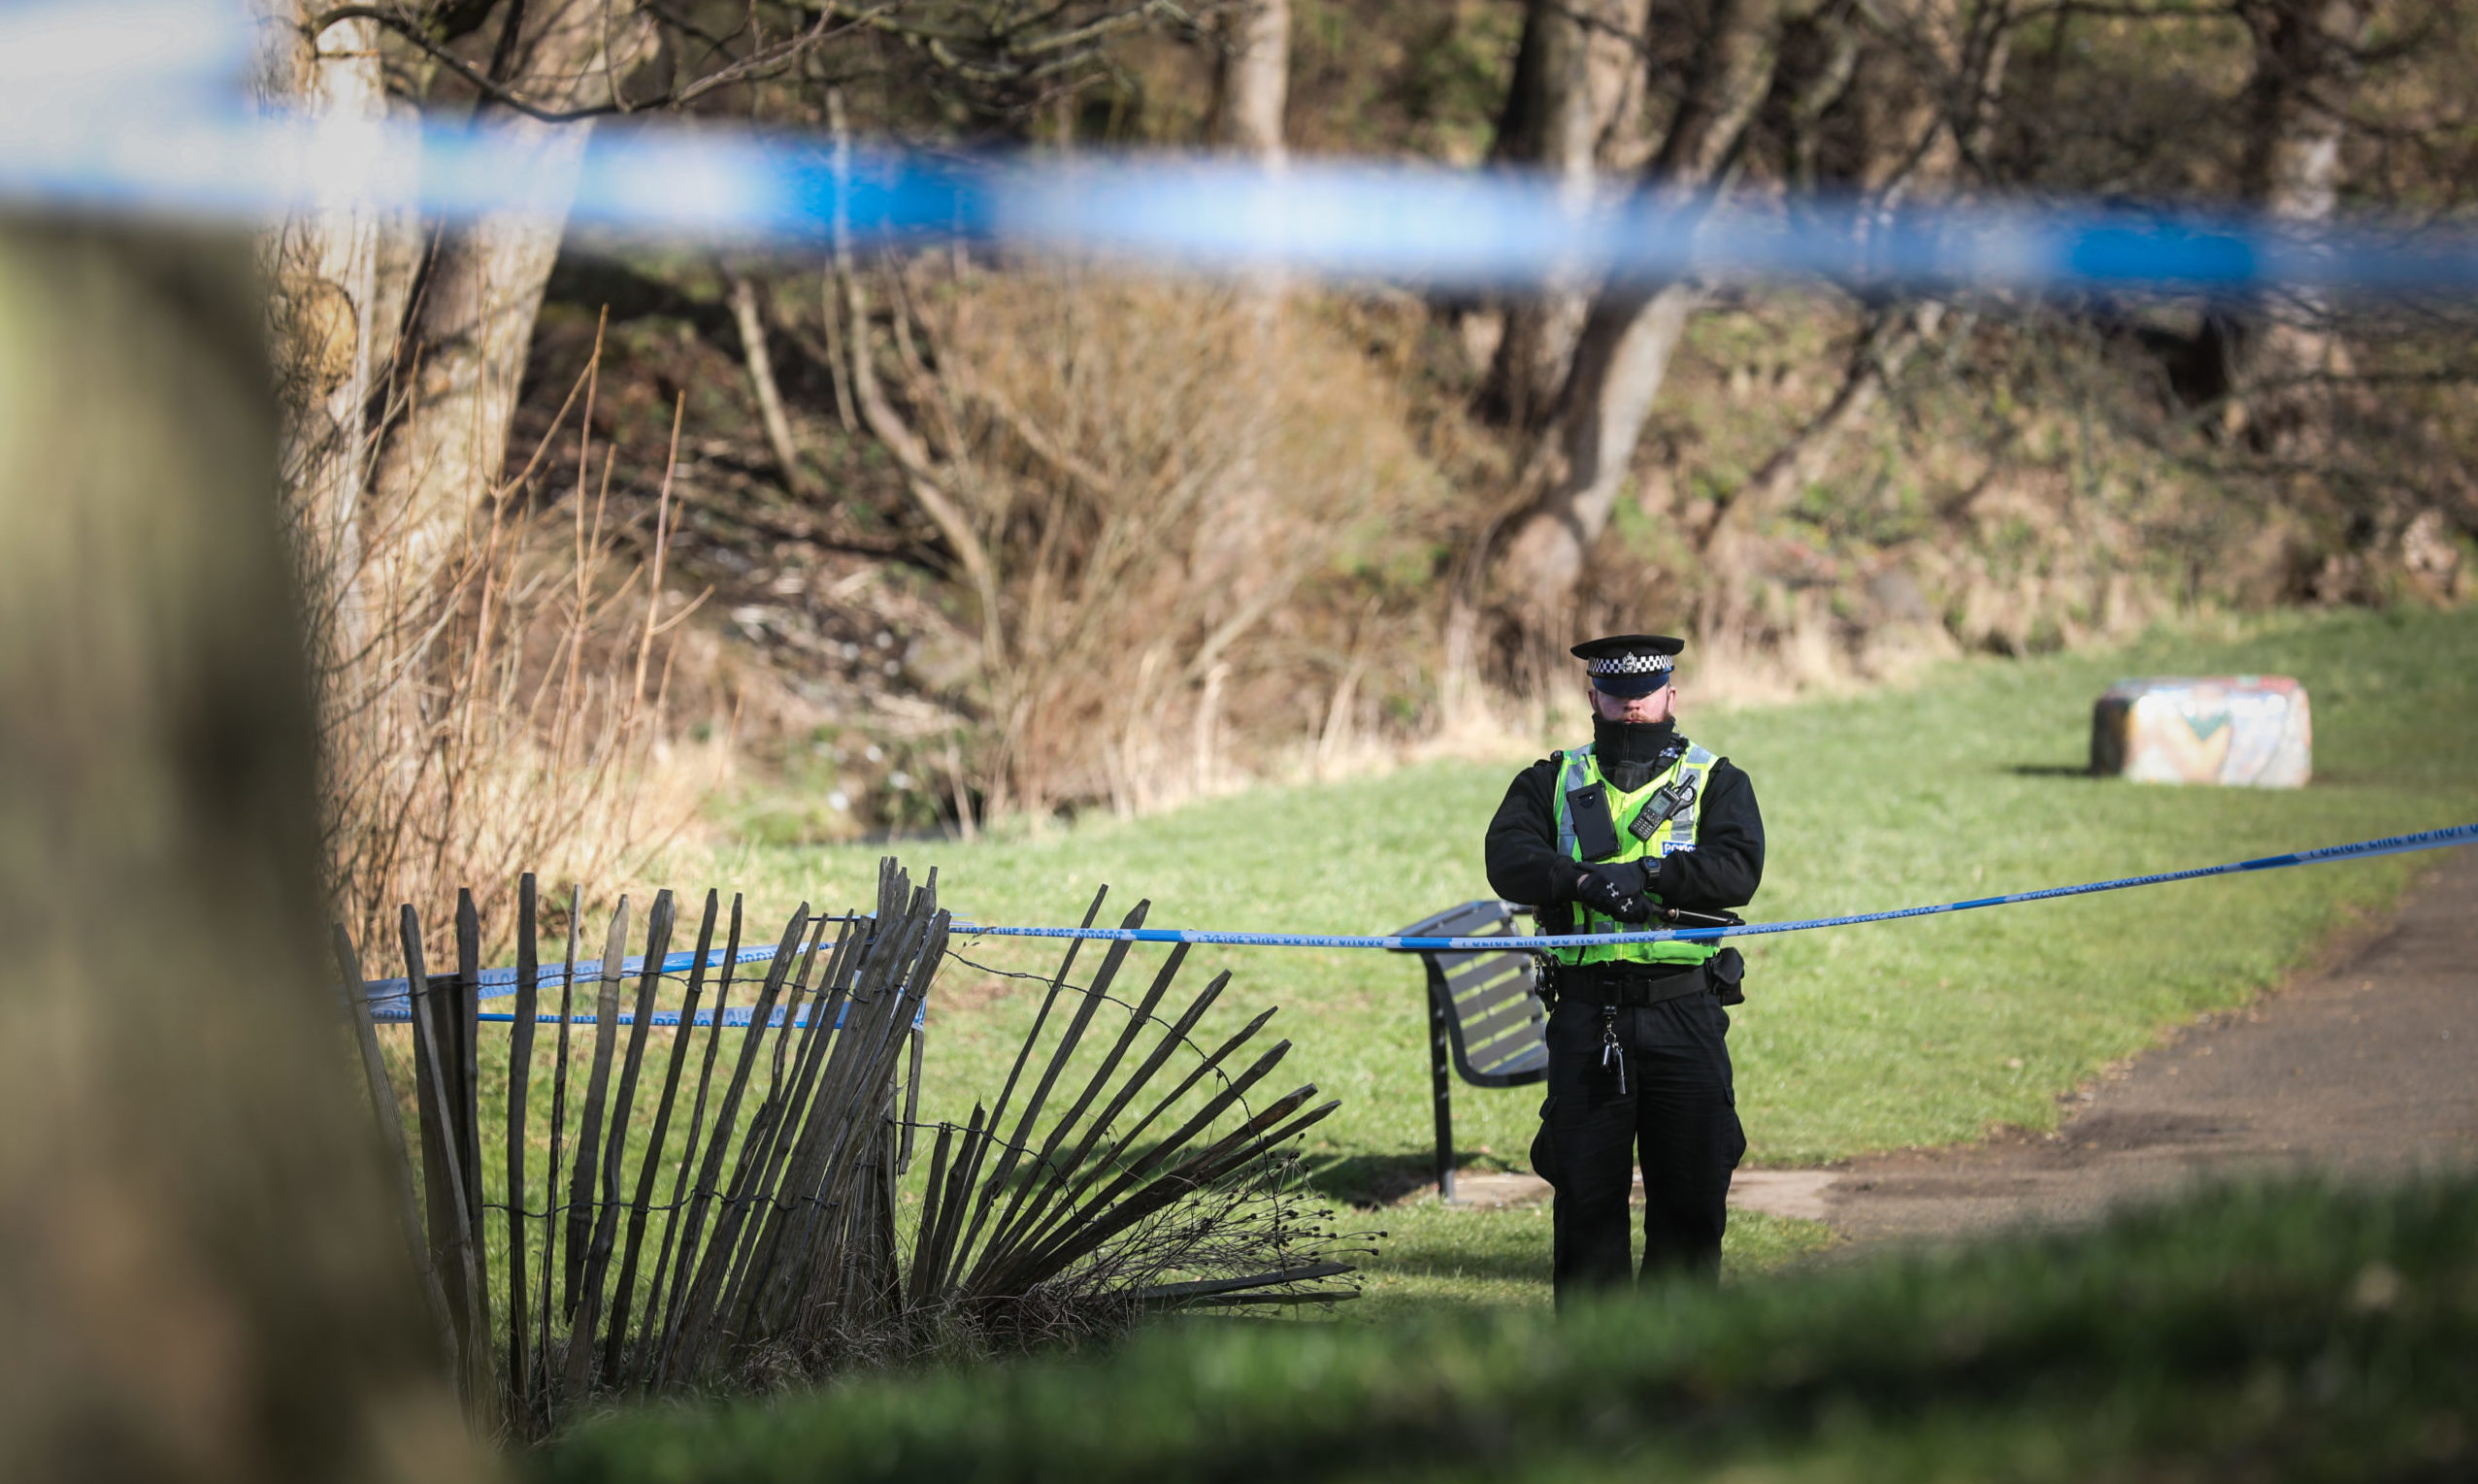 Police have cordoned off a section of the park around the Dighty Burn.